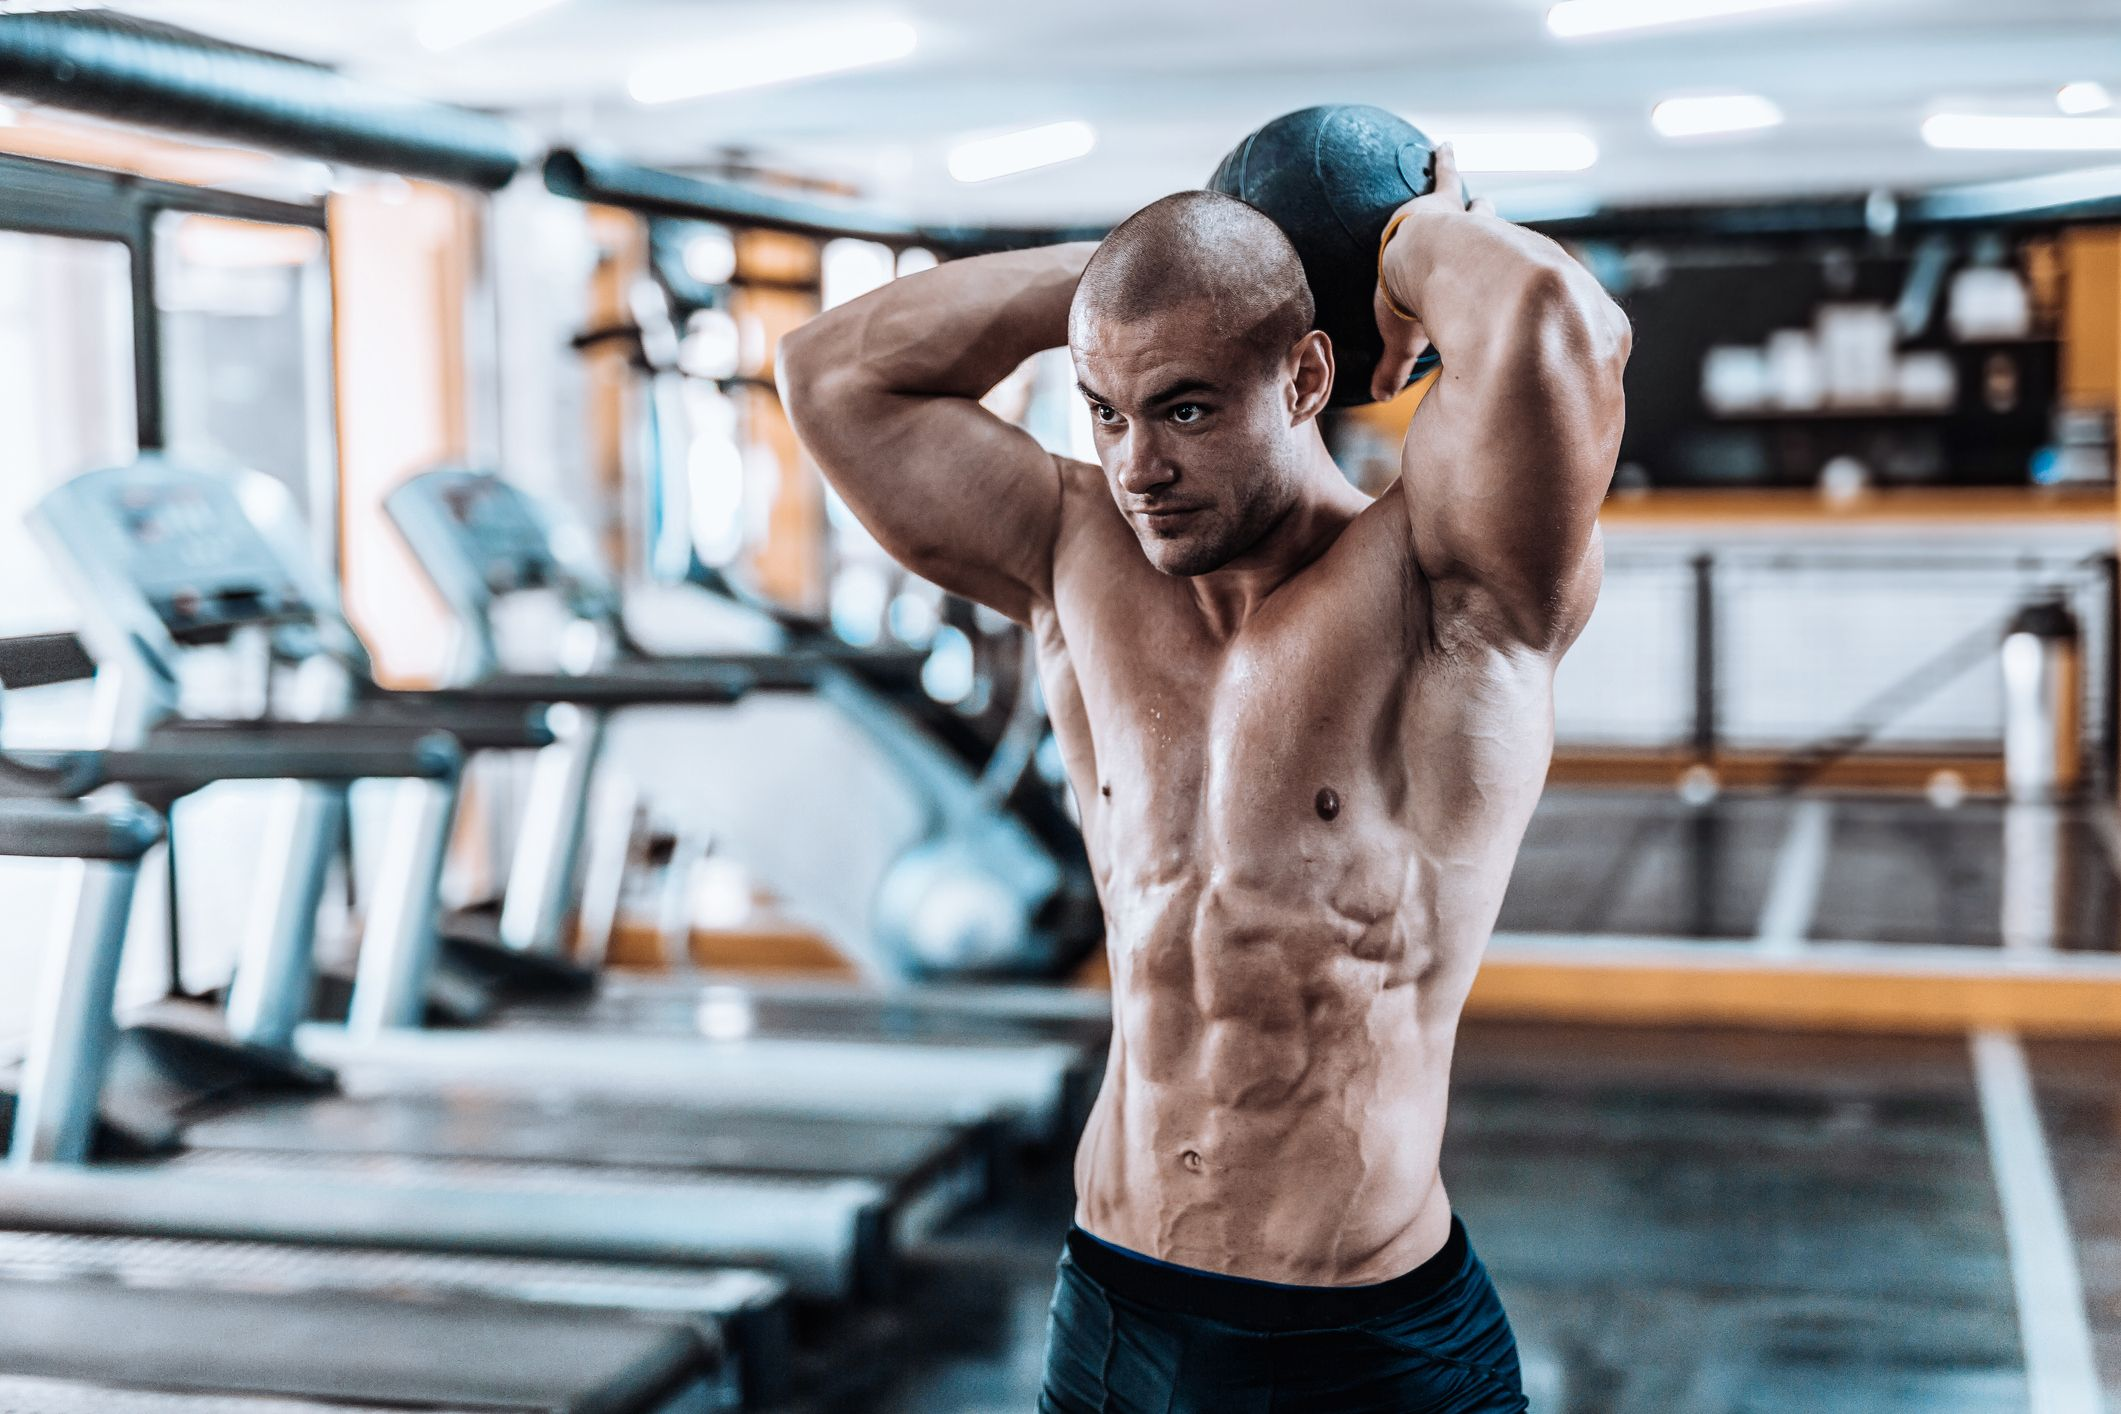 weight training workouts to loss fat